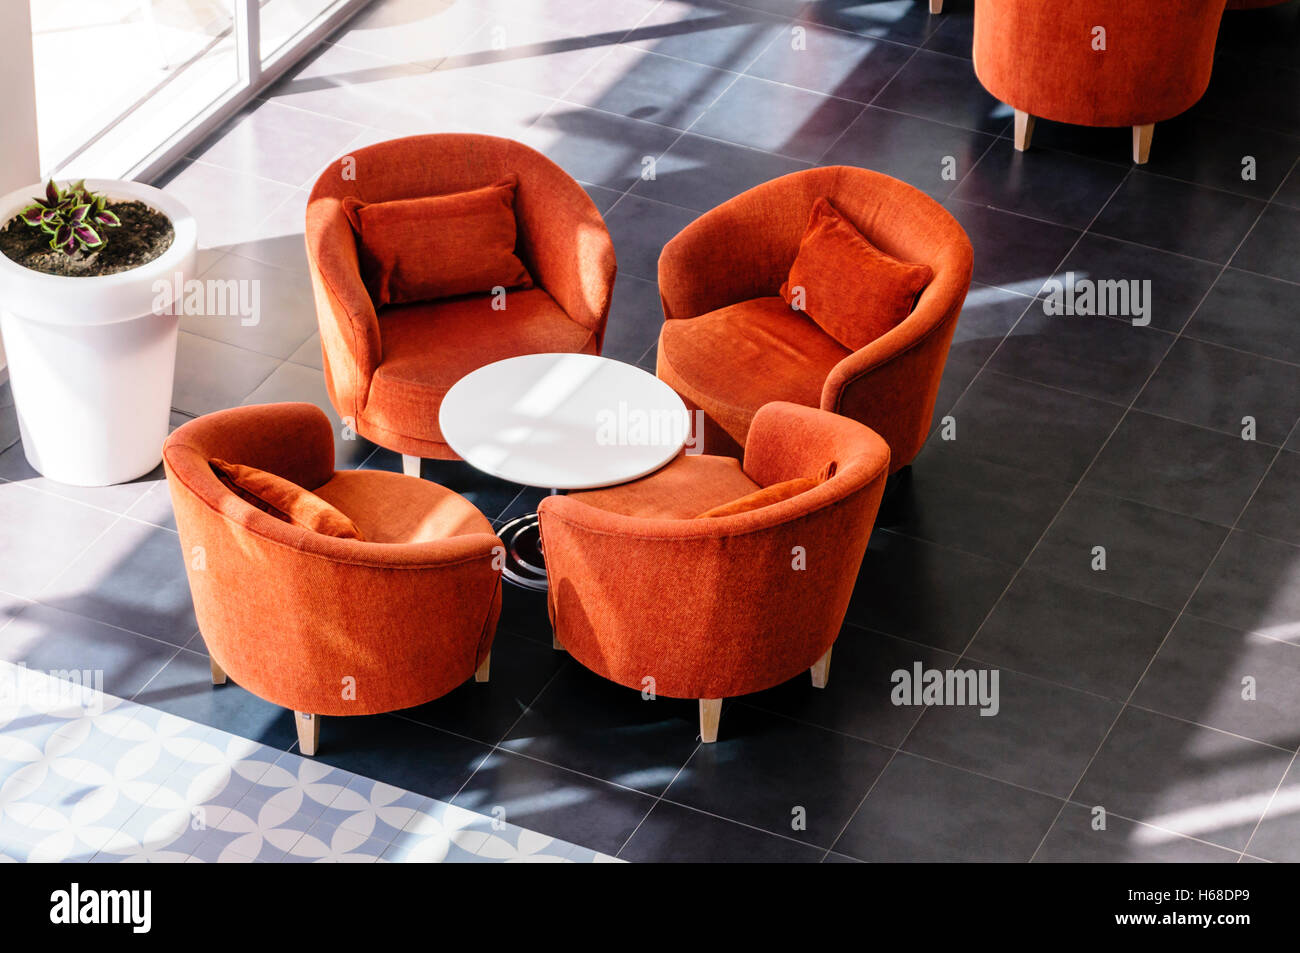 Orange Chairs And Table In A Hotel Lobby Stock Photo Alamy